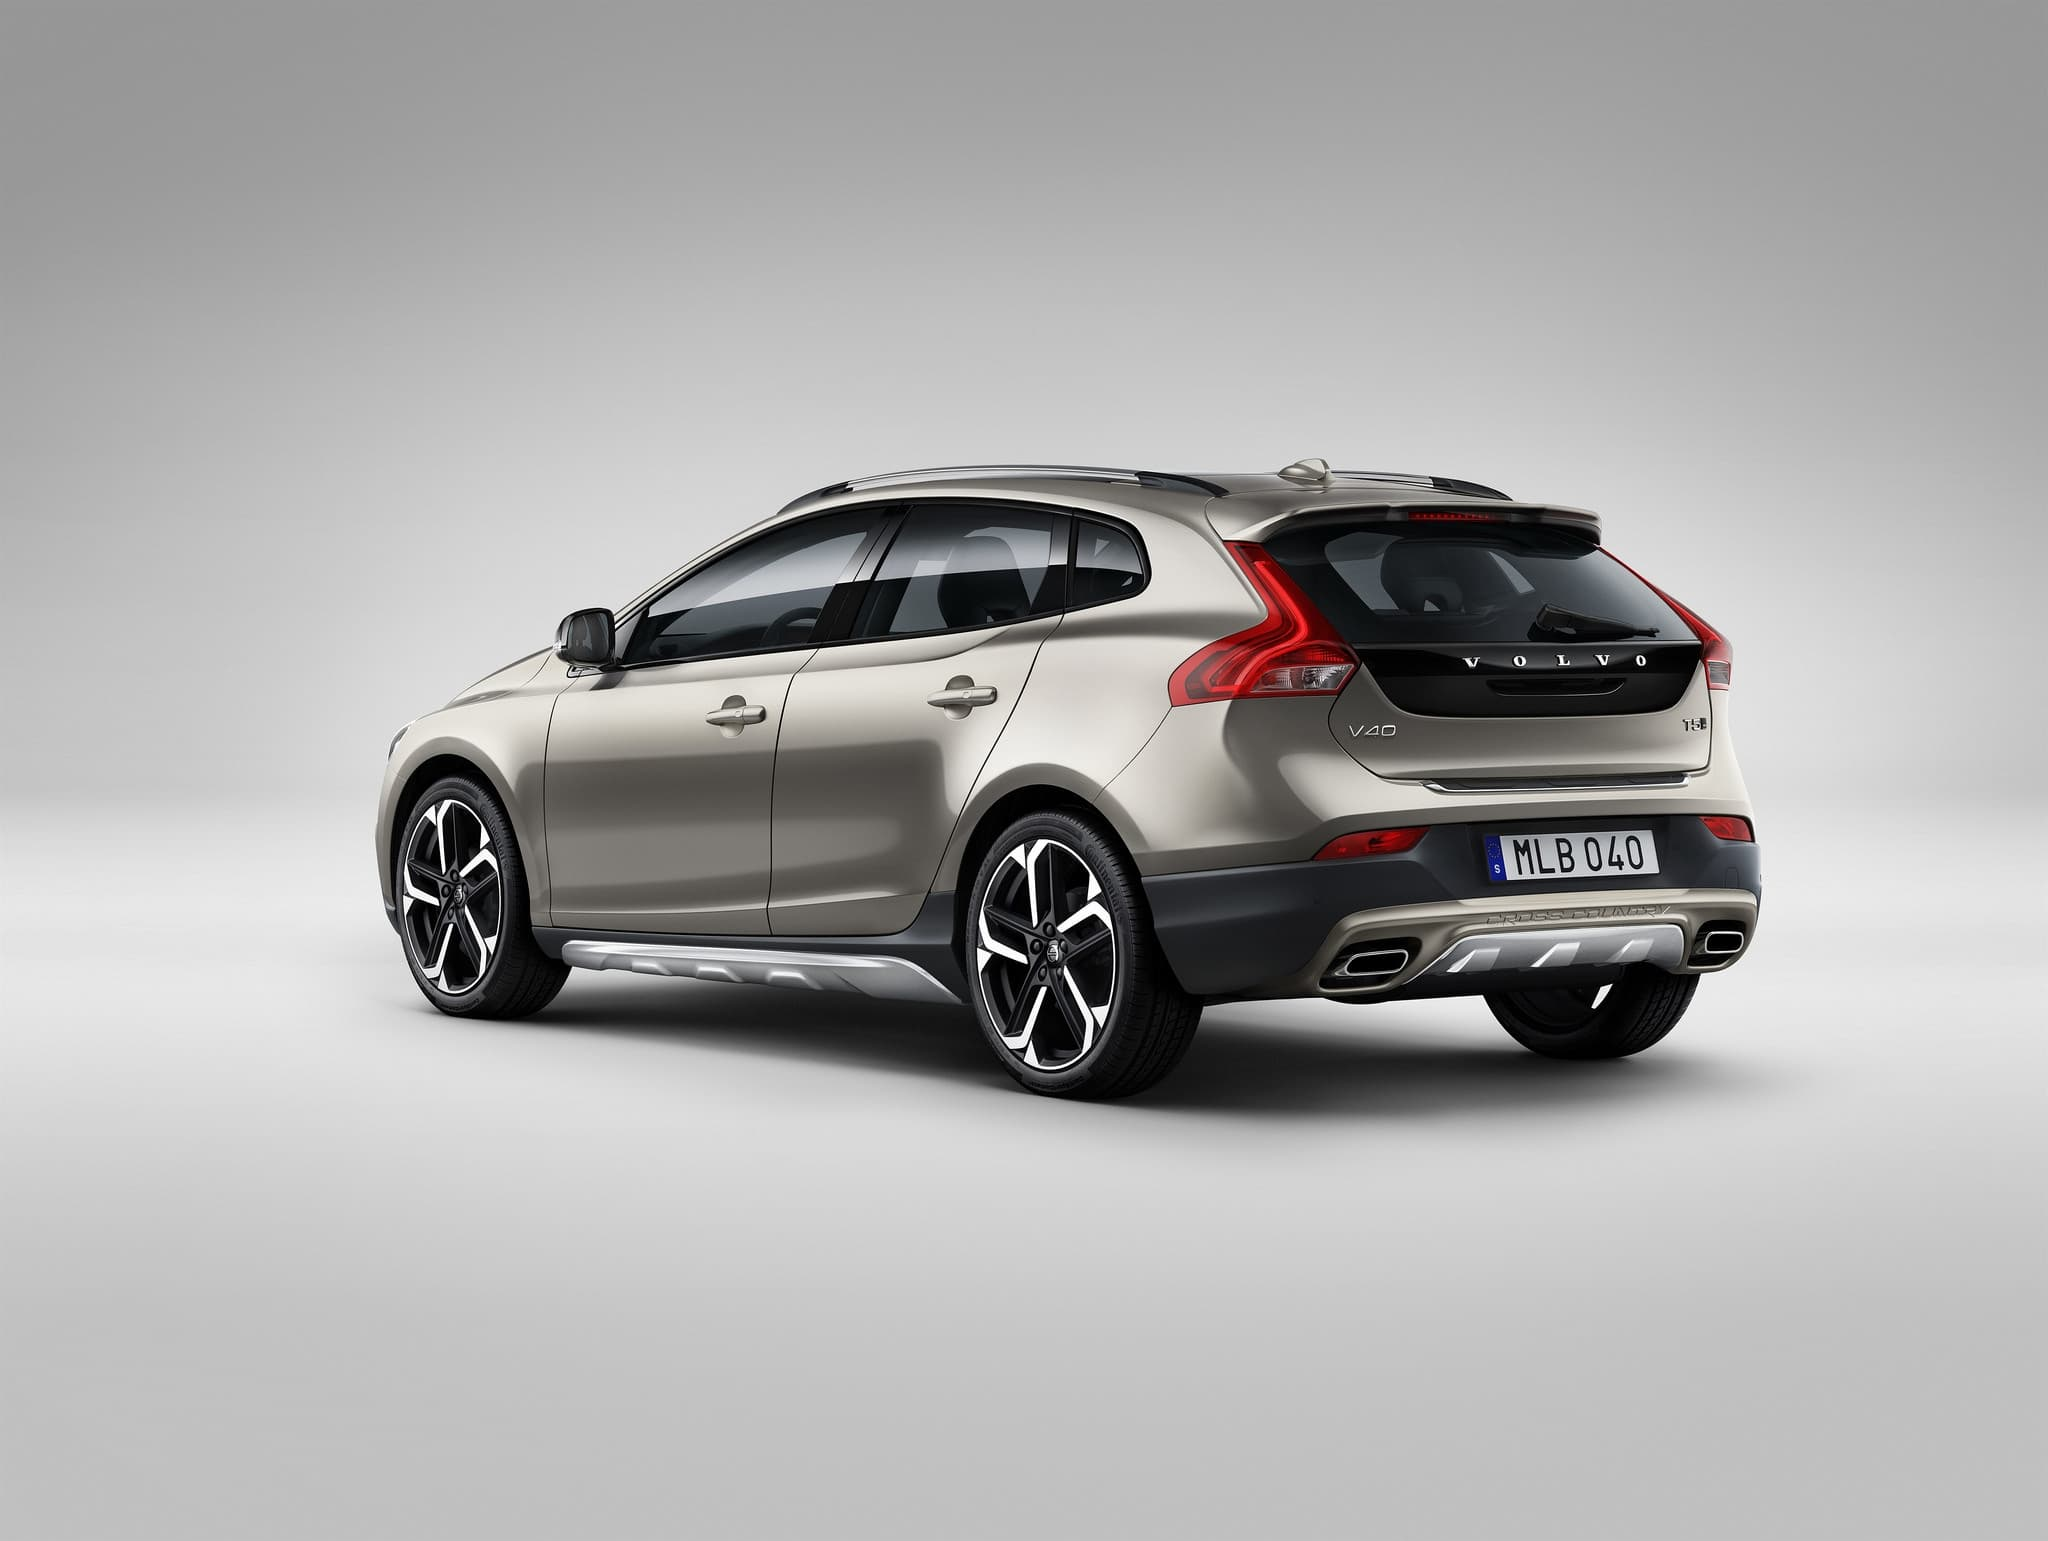 20 Volvo V40 Wallpapers Pictures And Images For Desktop